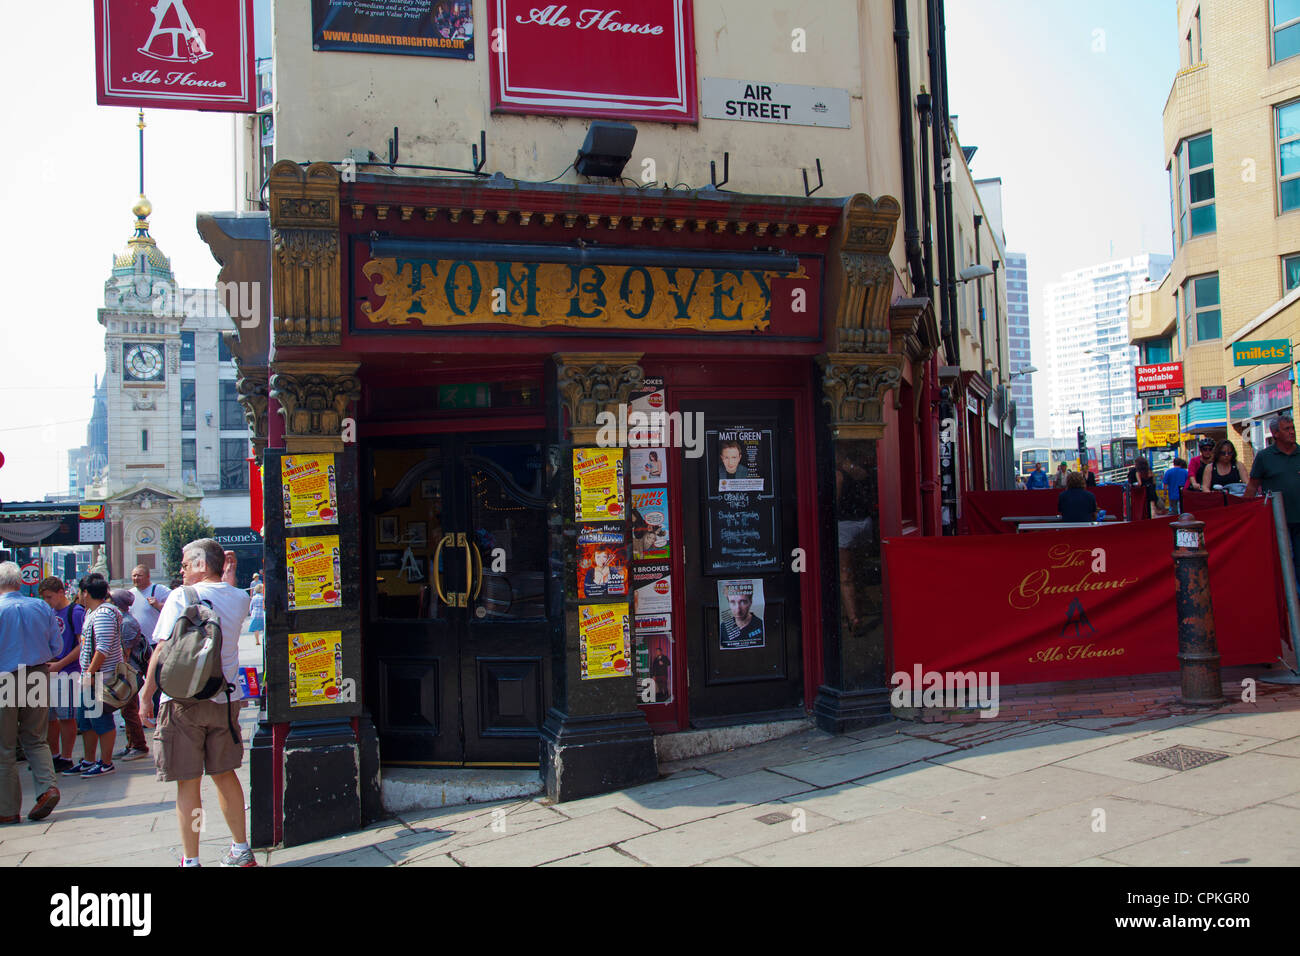 Tom Bovey Pub/ Quadrant Ale House on Cnr of Air and Queens St - Brighton UK - Stock Image